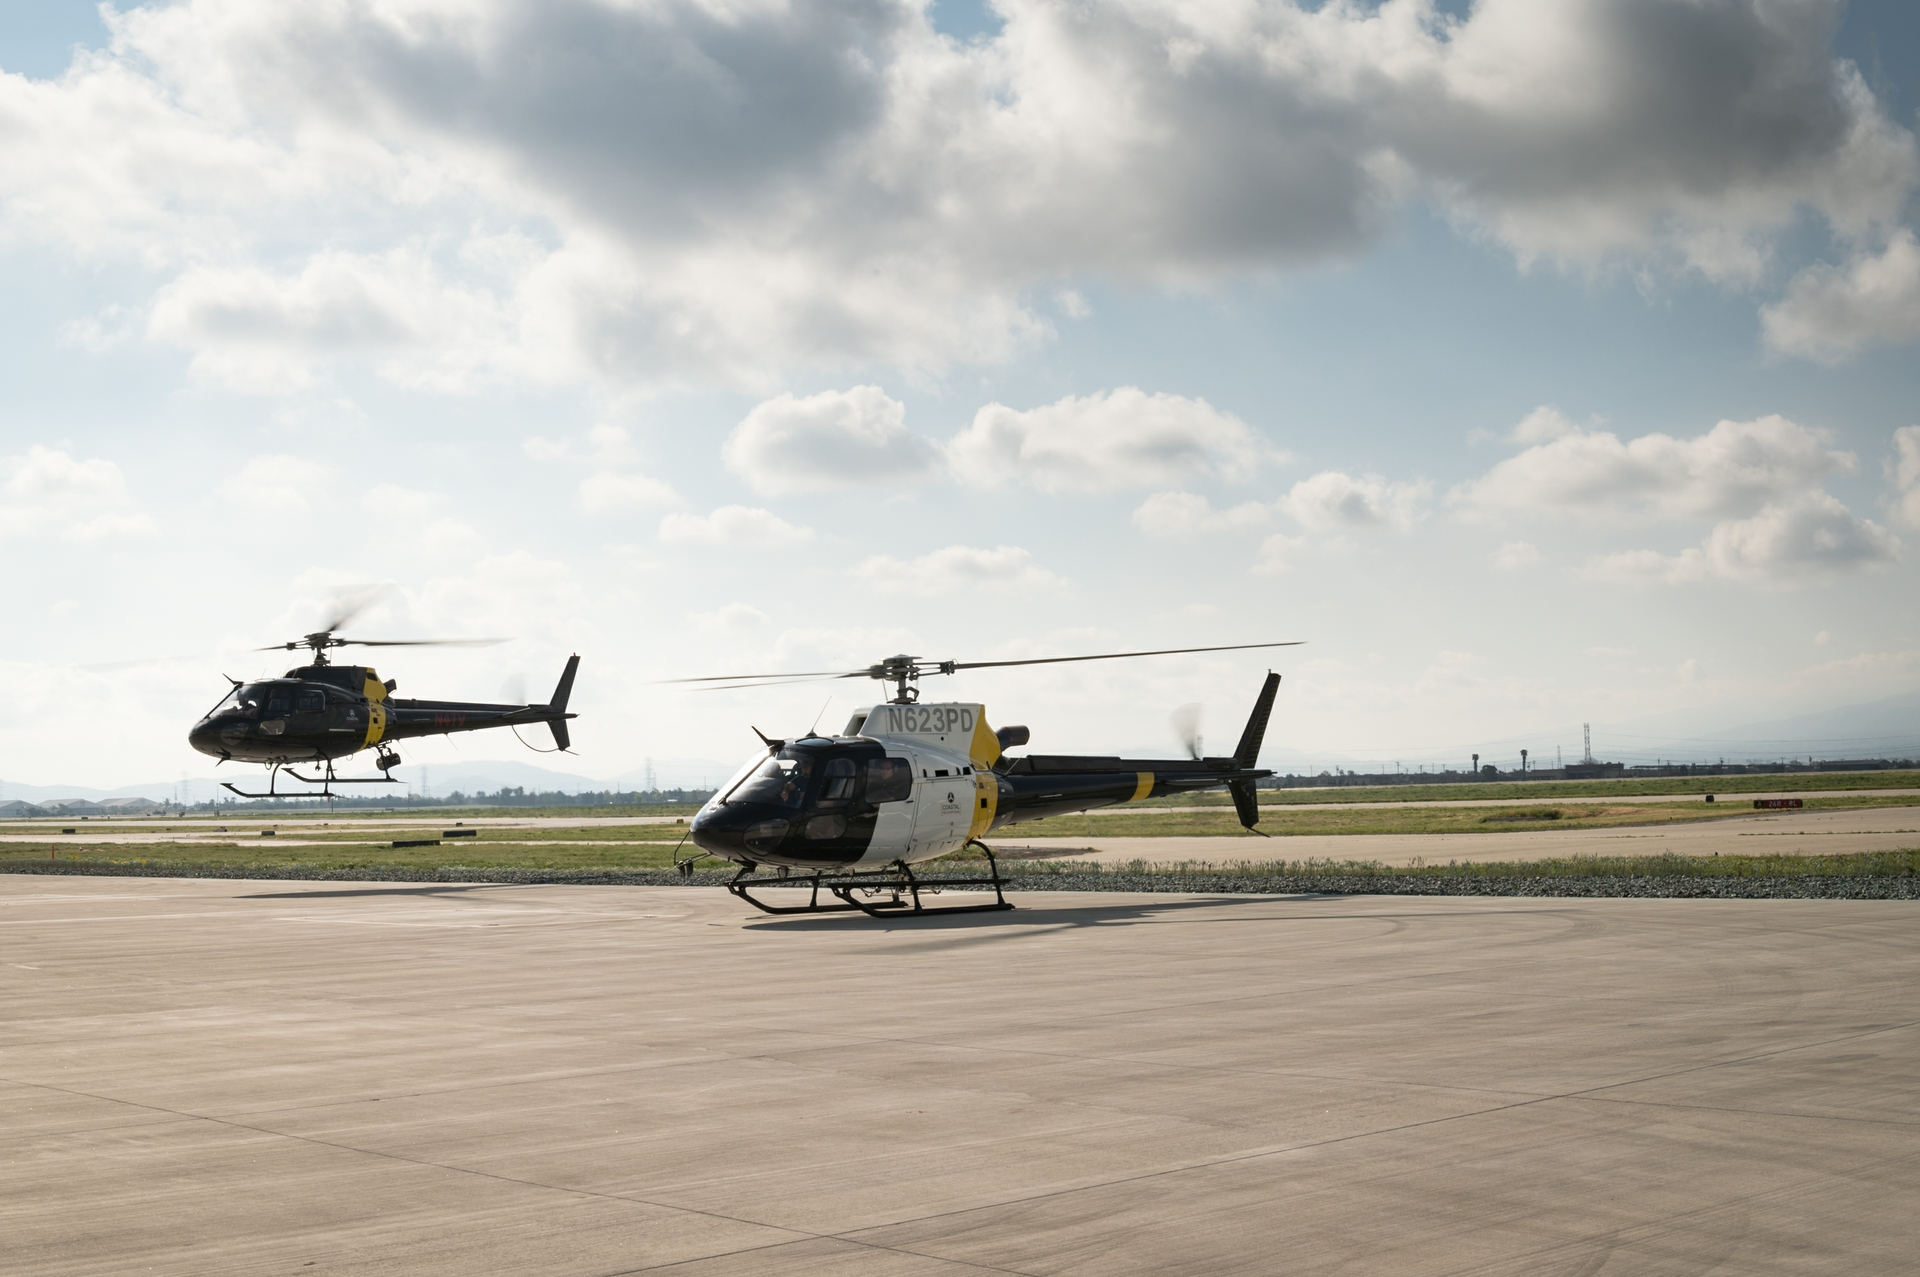 Helicopters land at SCE Air Operations in Chino.